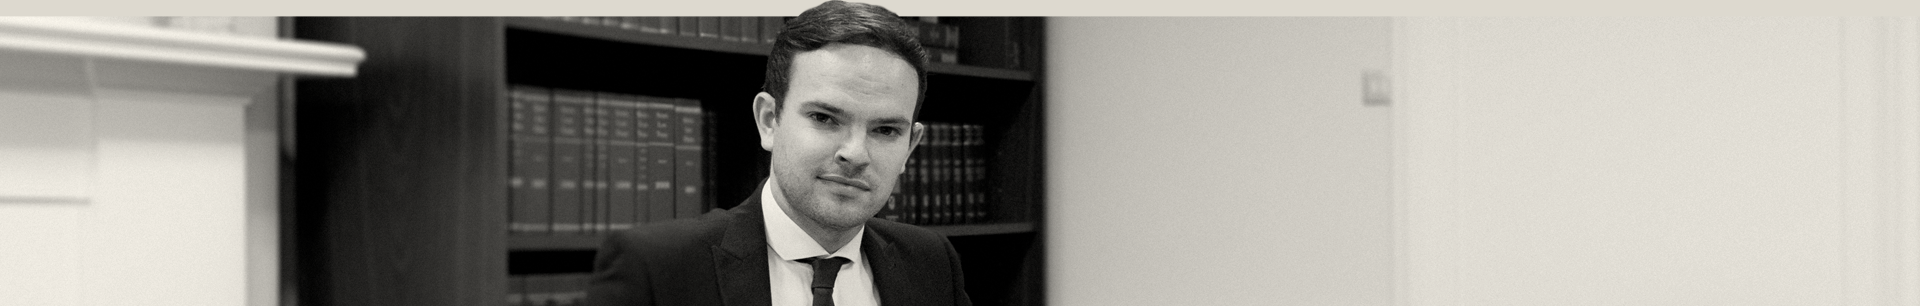 Adam Ferguson | Thompsons Solicitors Scotland